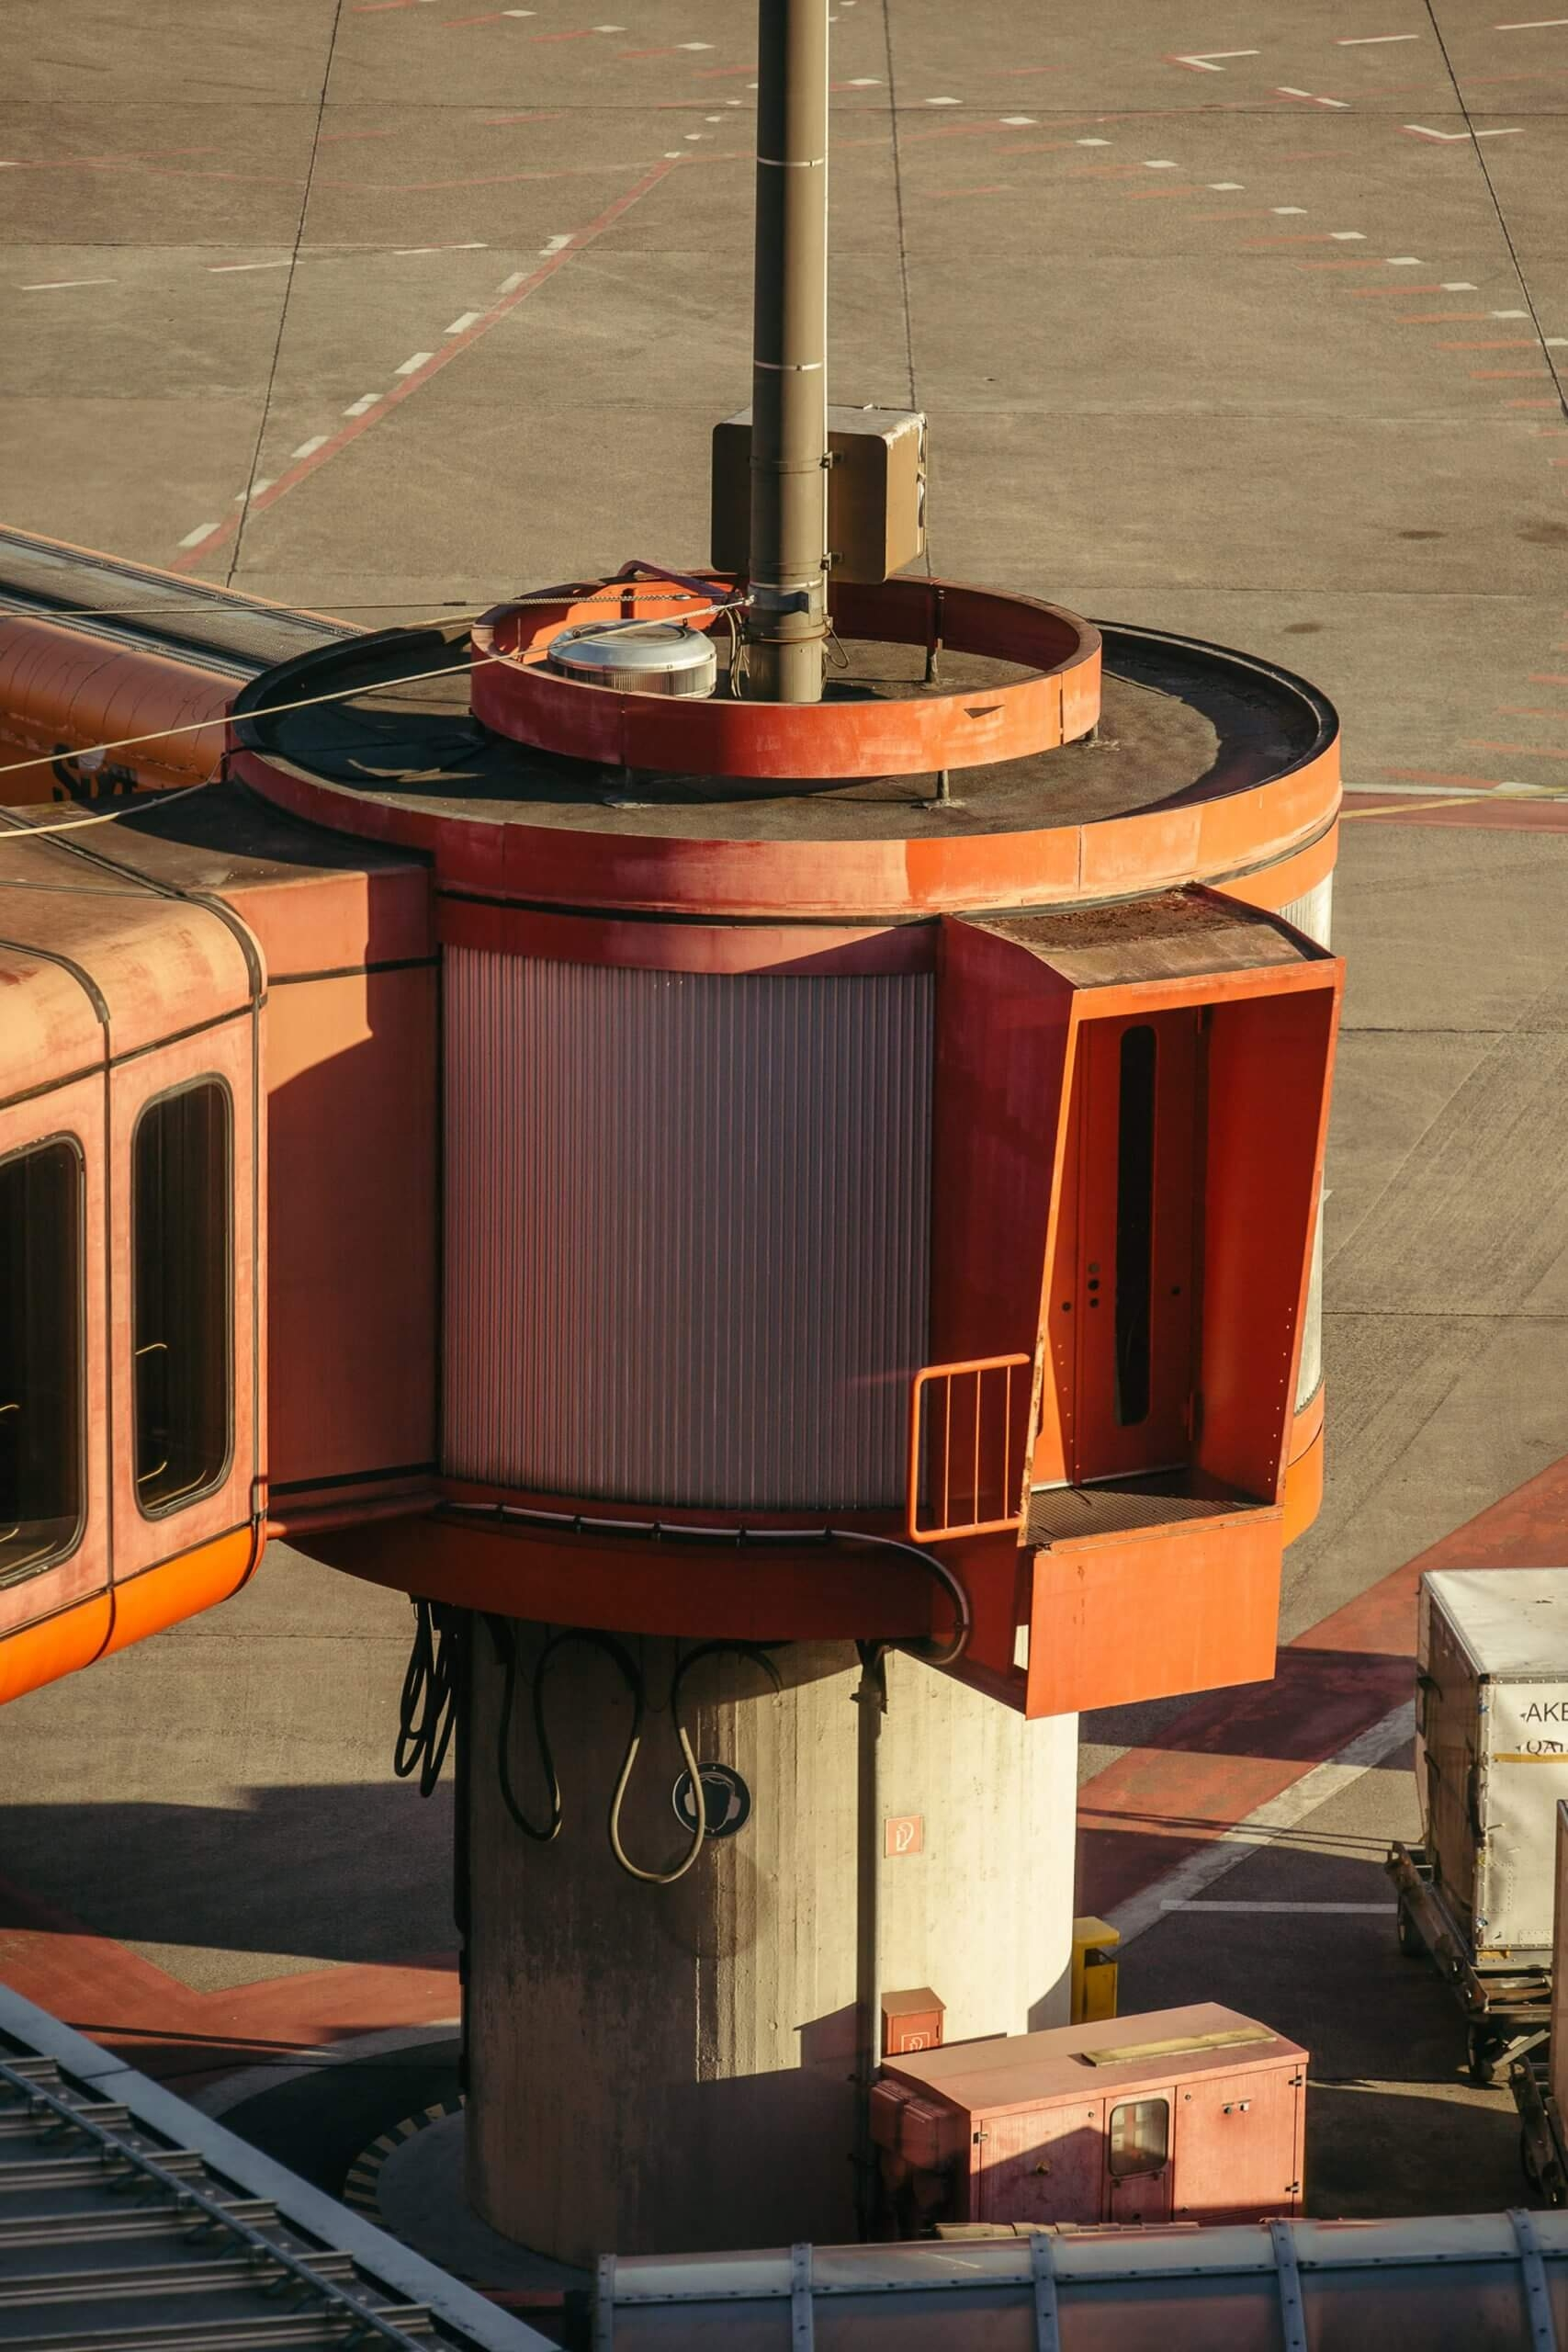 flughafen tegel photo book feature dezeen 2364 col 11 scaled 1